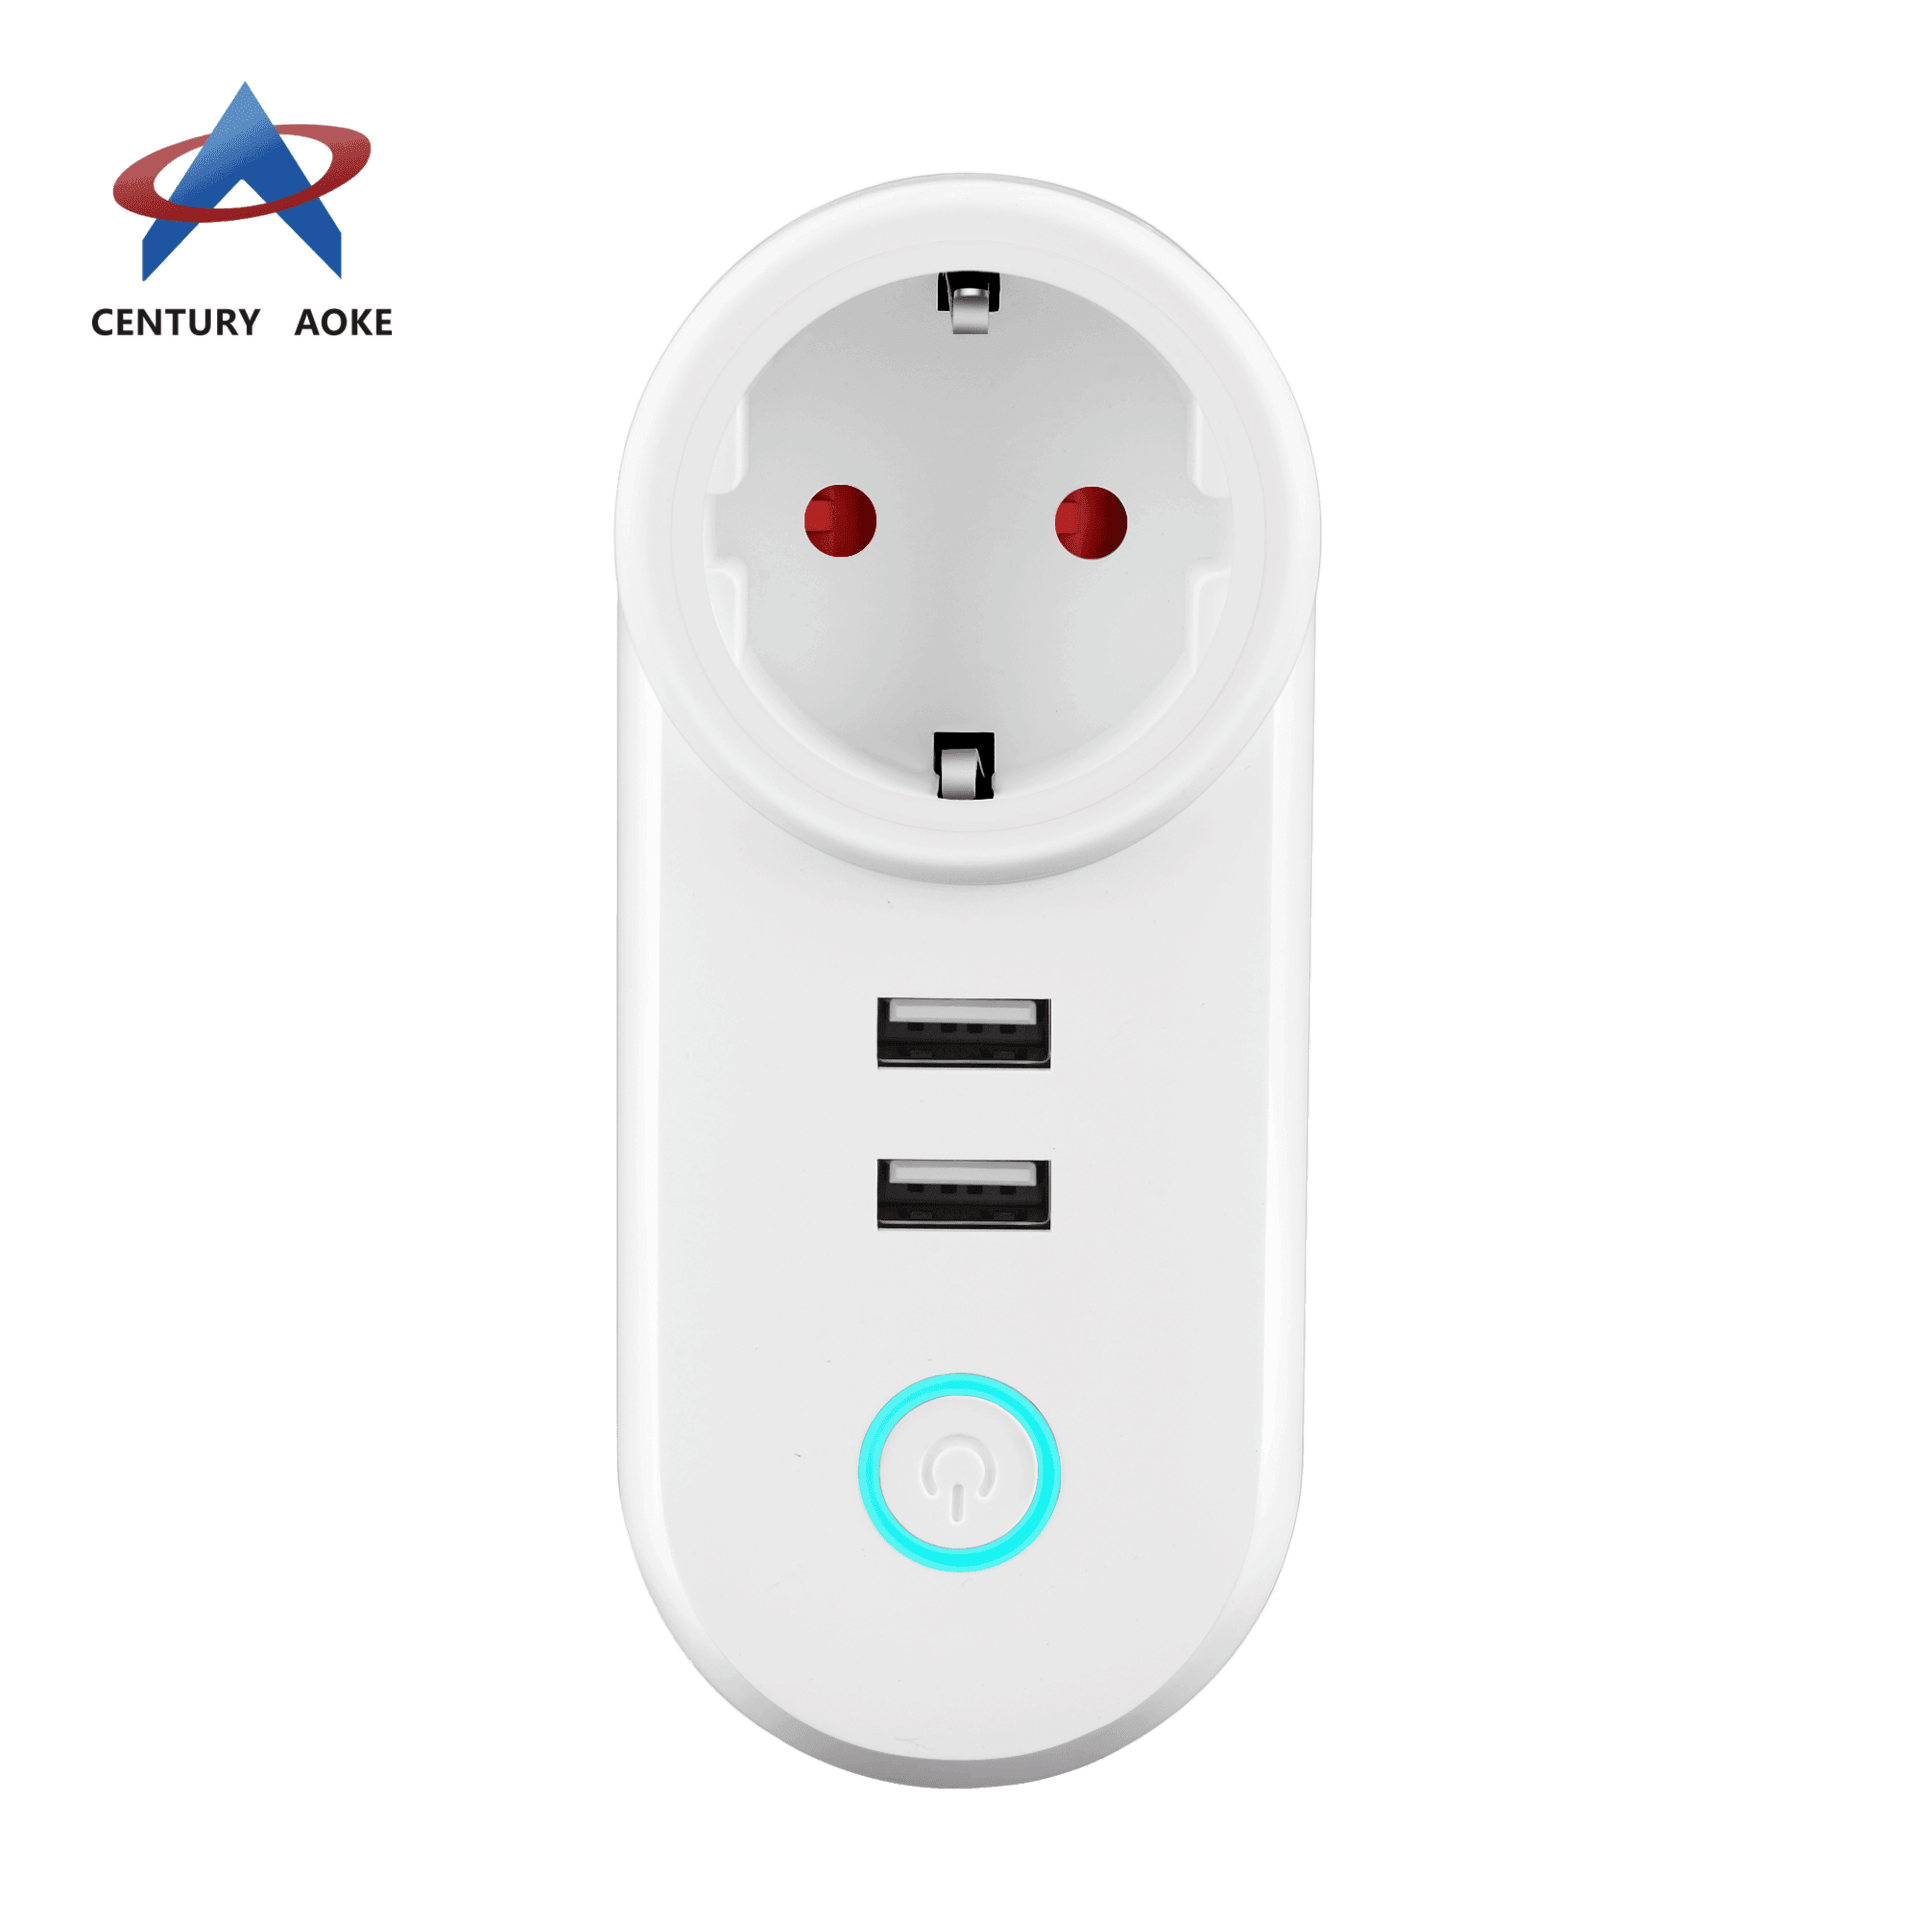 Aoke best wifi enabled smart plug inquire now used in LED lamps